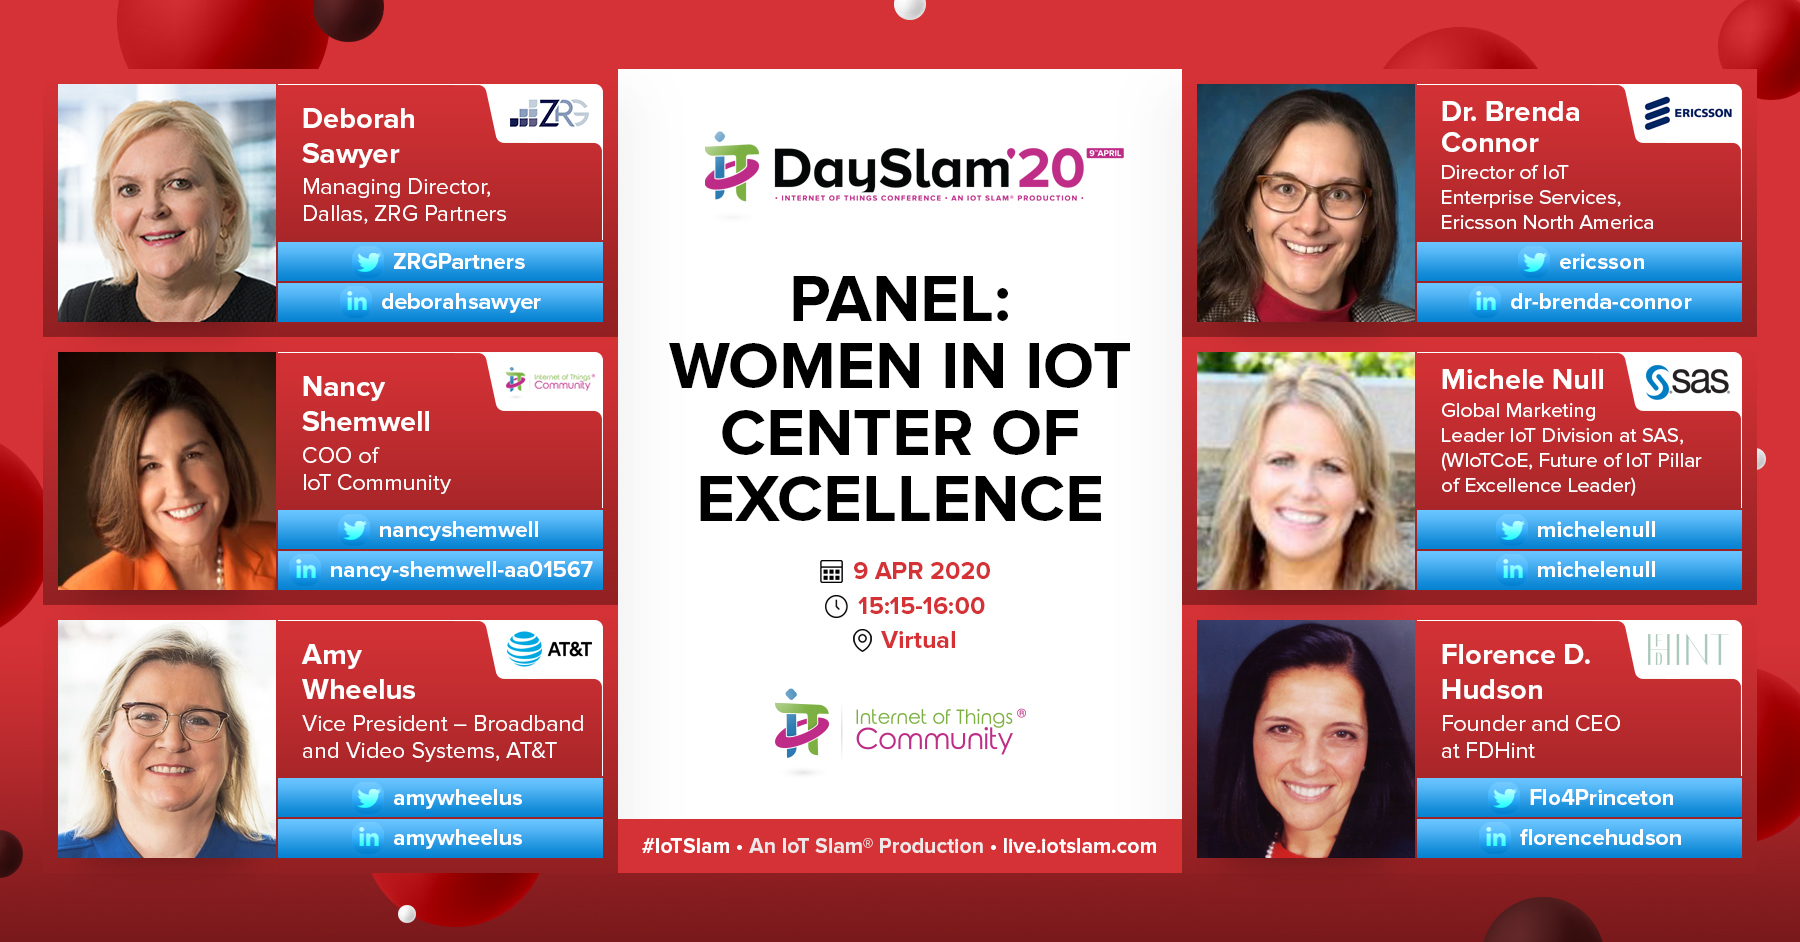 Panel: Women in IoT Center of Excellence